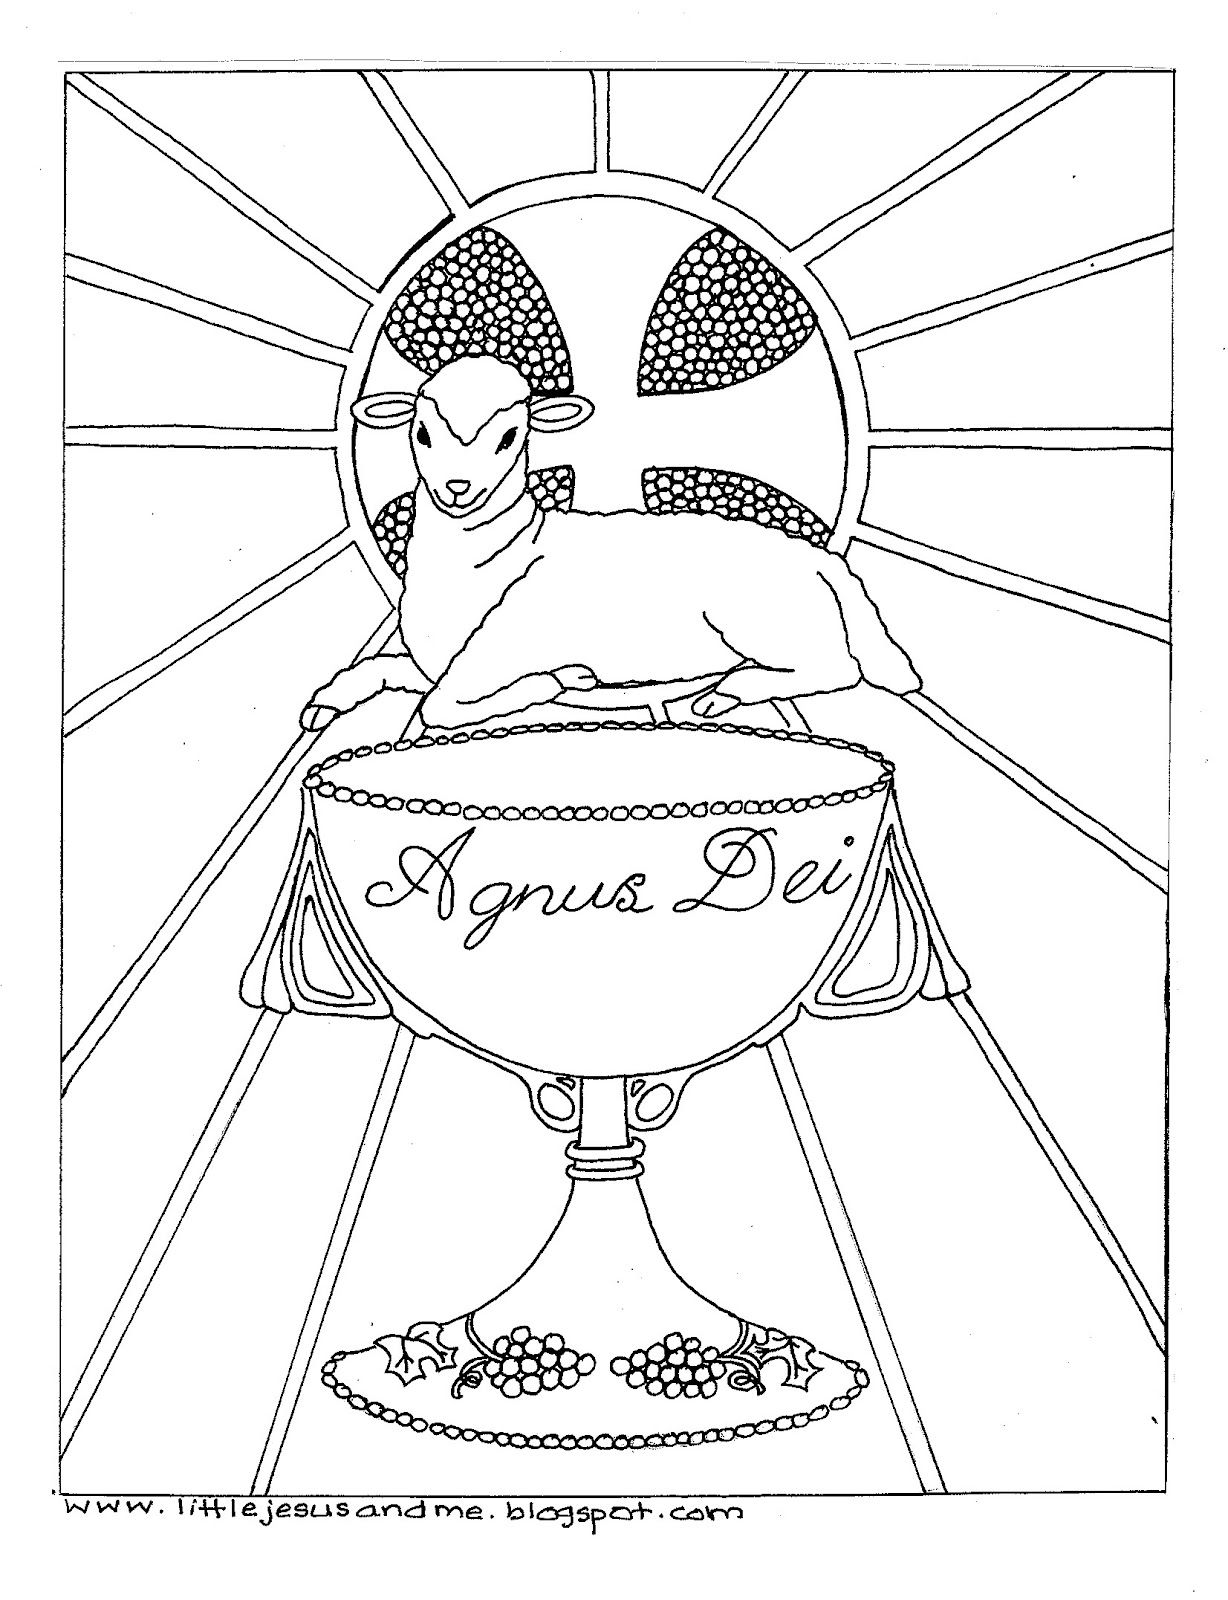 Lamb colouring pages to print - Little Jesus And Me Color Pages